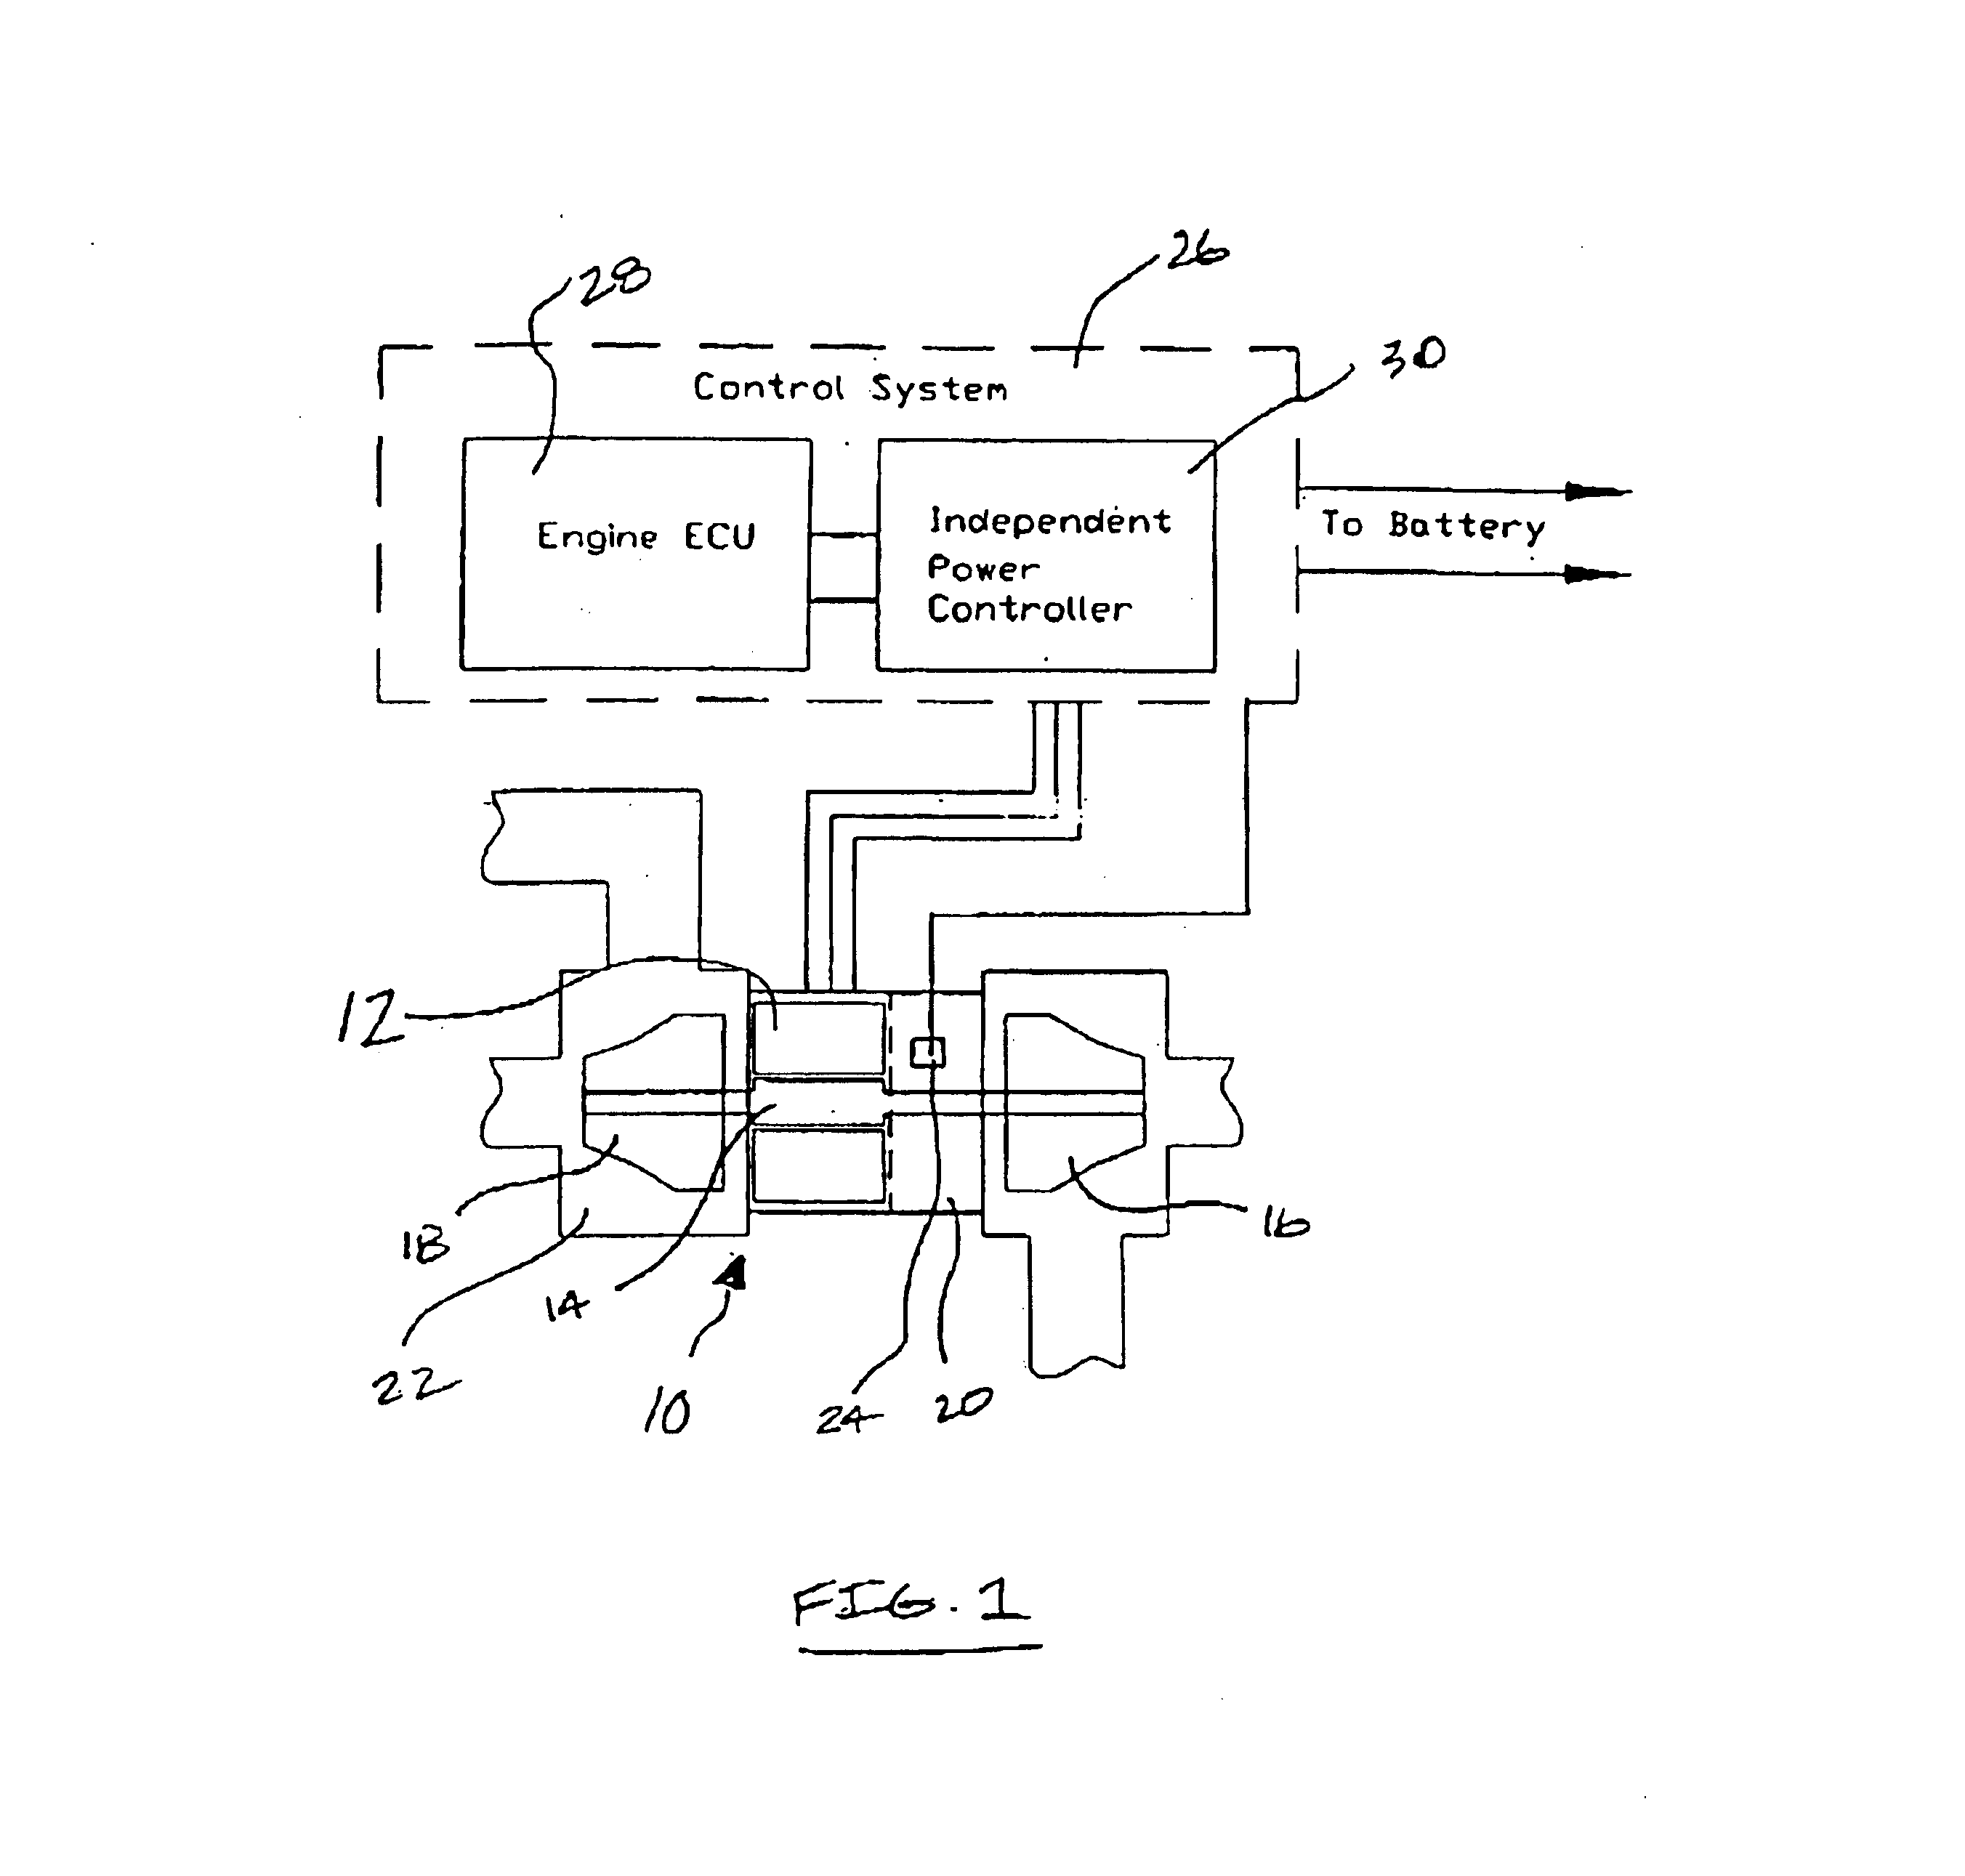 Electric Turbocharger Patents: Oil Pressure Detector For Electric